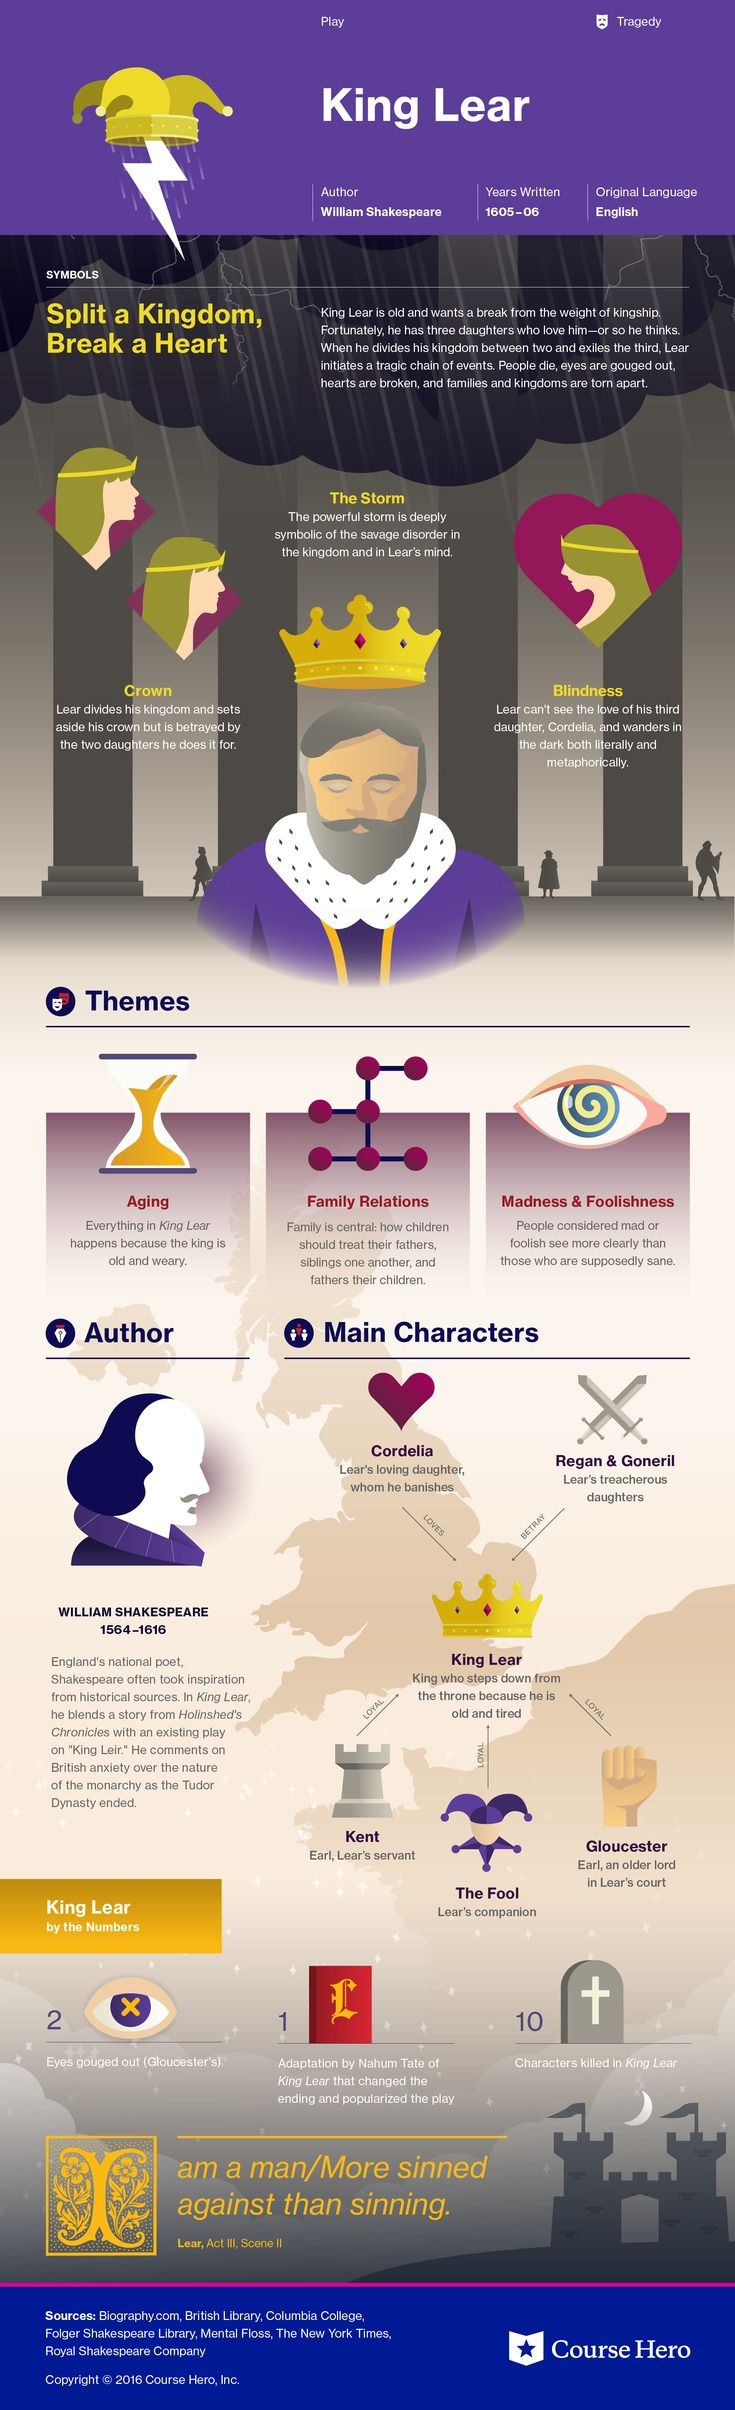 This @CourseHero infographic on King Lear is both visually stunning and informative!